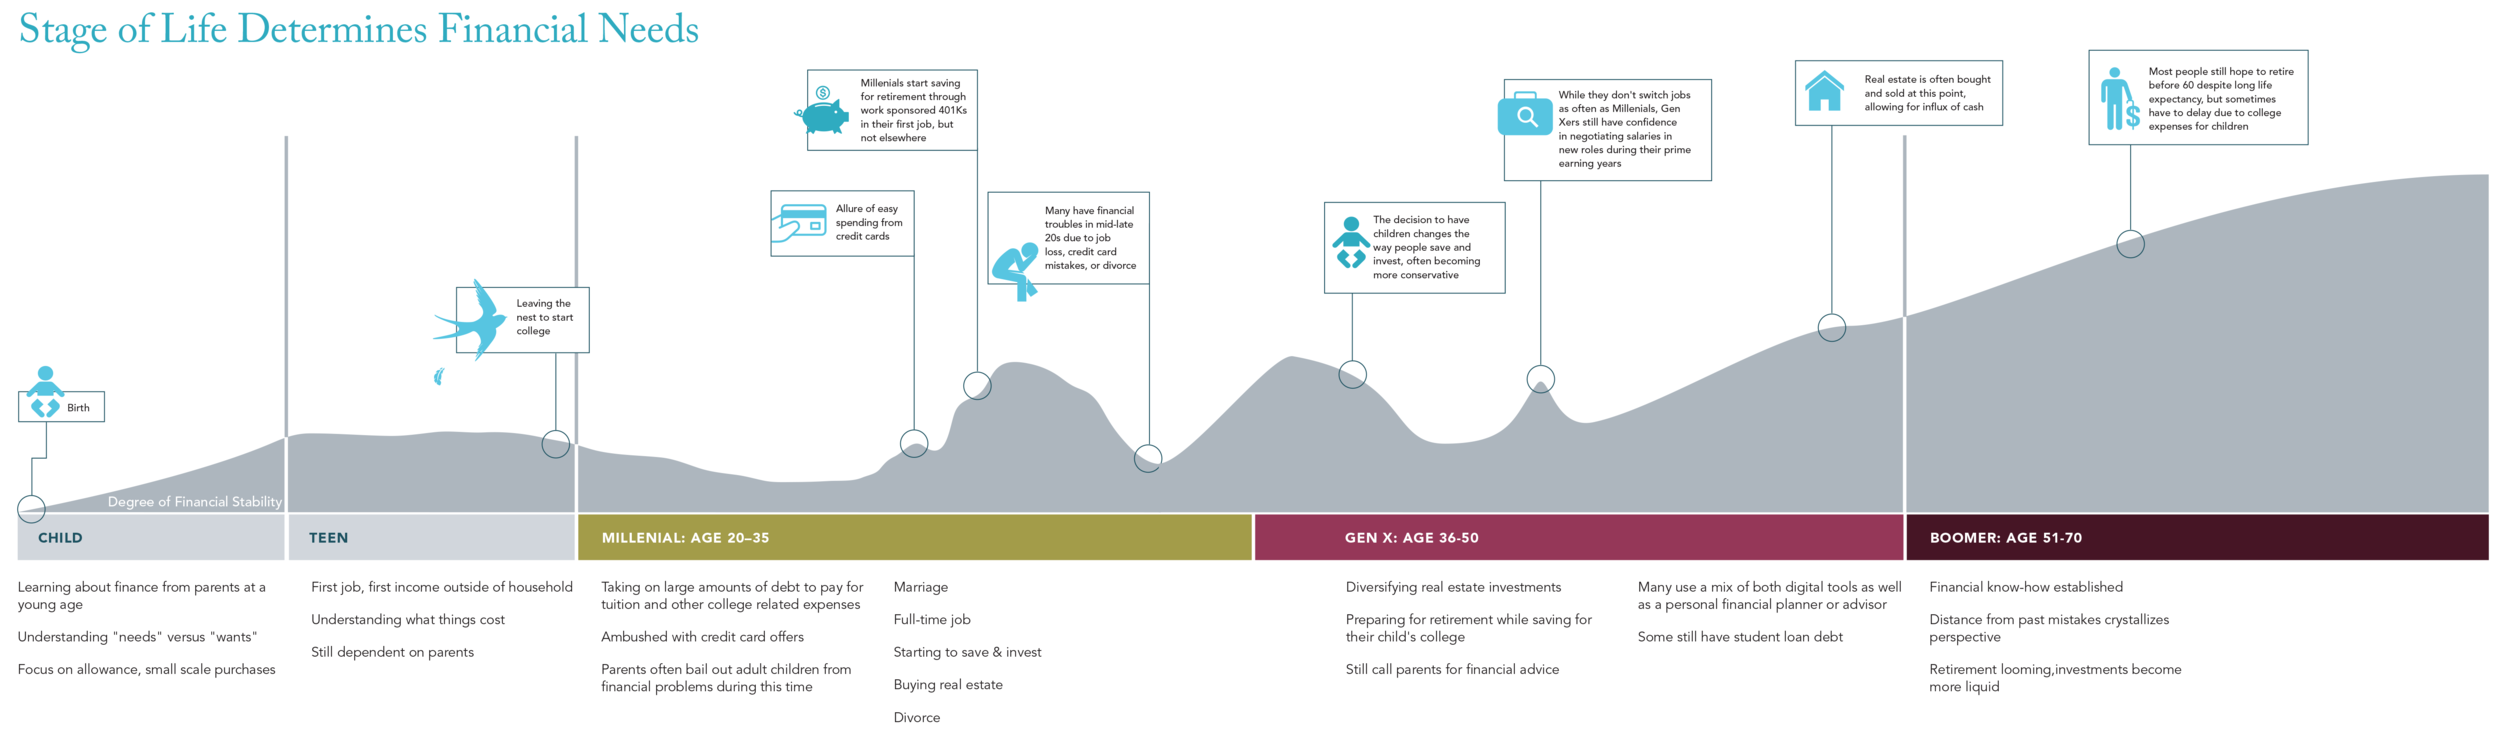 Journey Map created in InDesign by myself & Dan Shilov